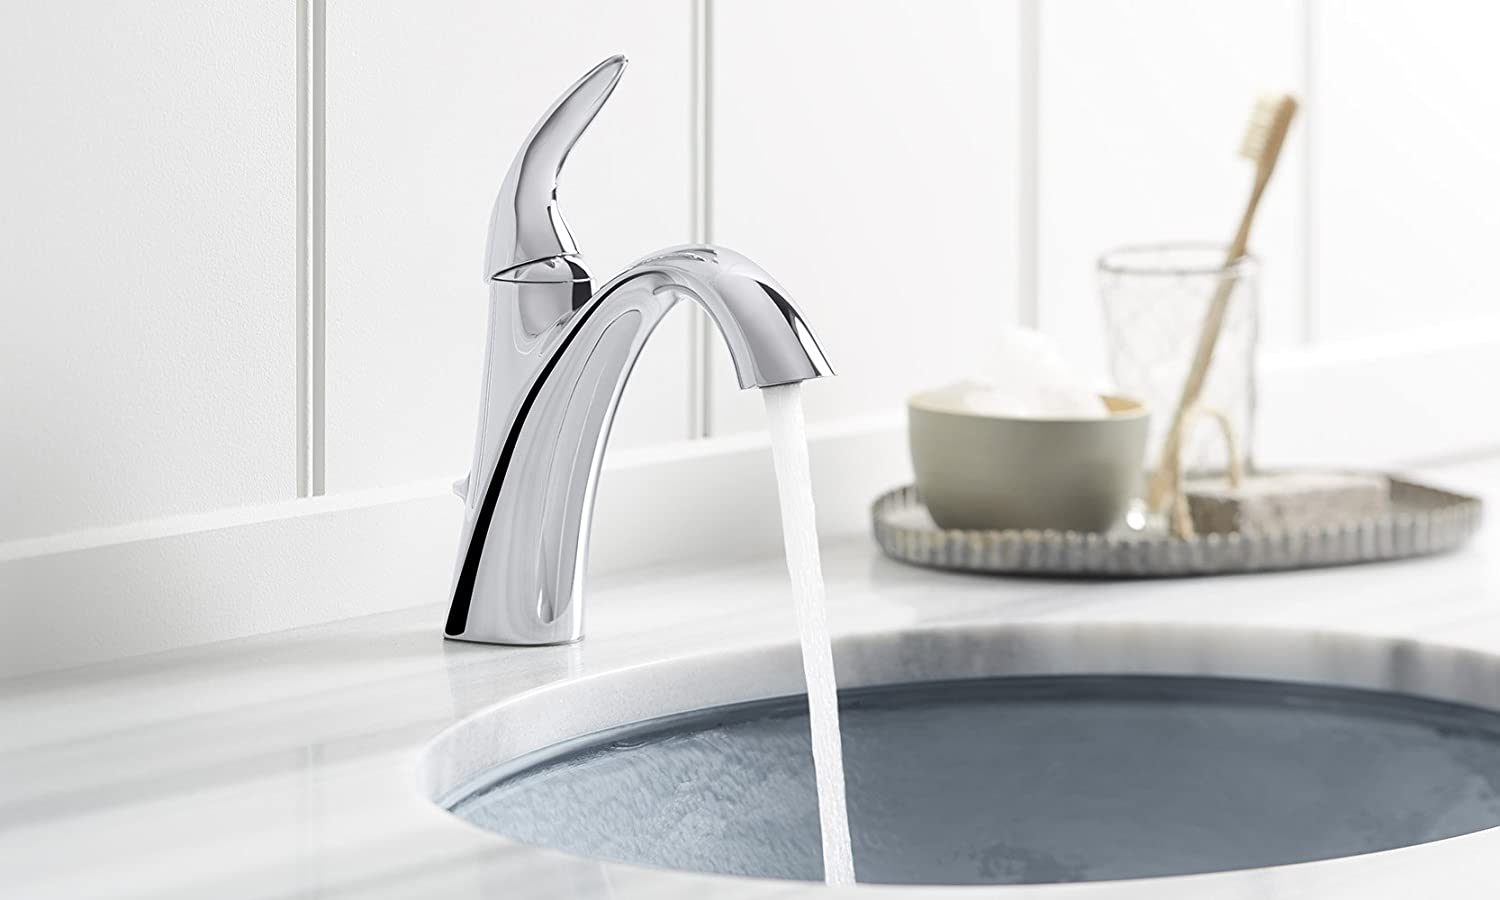 KOHLER K-45800-4-CP Alteo Single-Handle Bathroom Sink Faucet ...